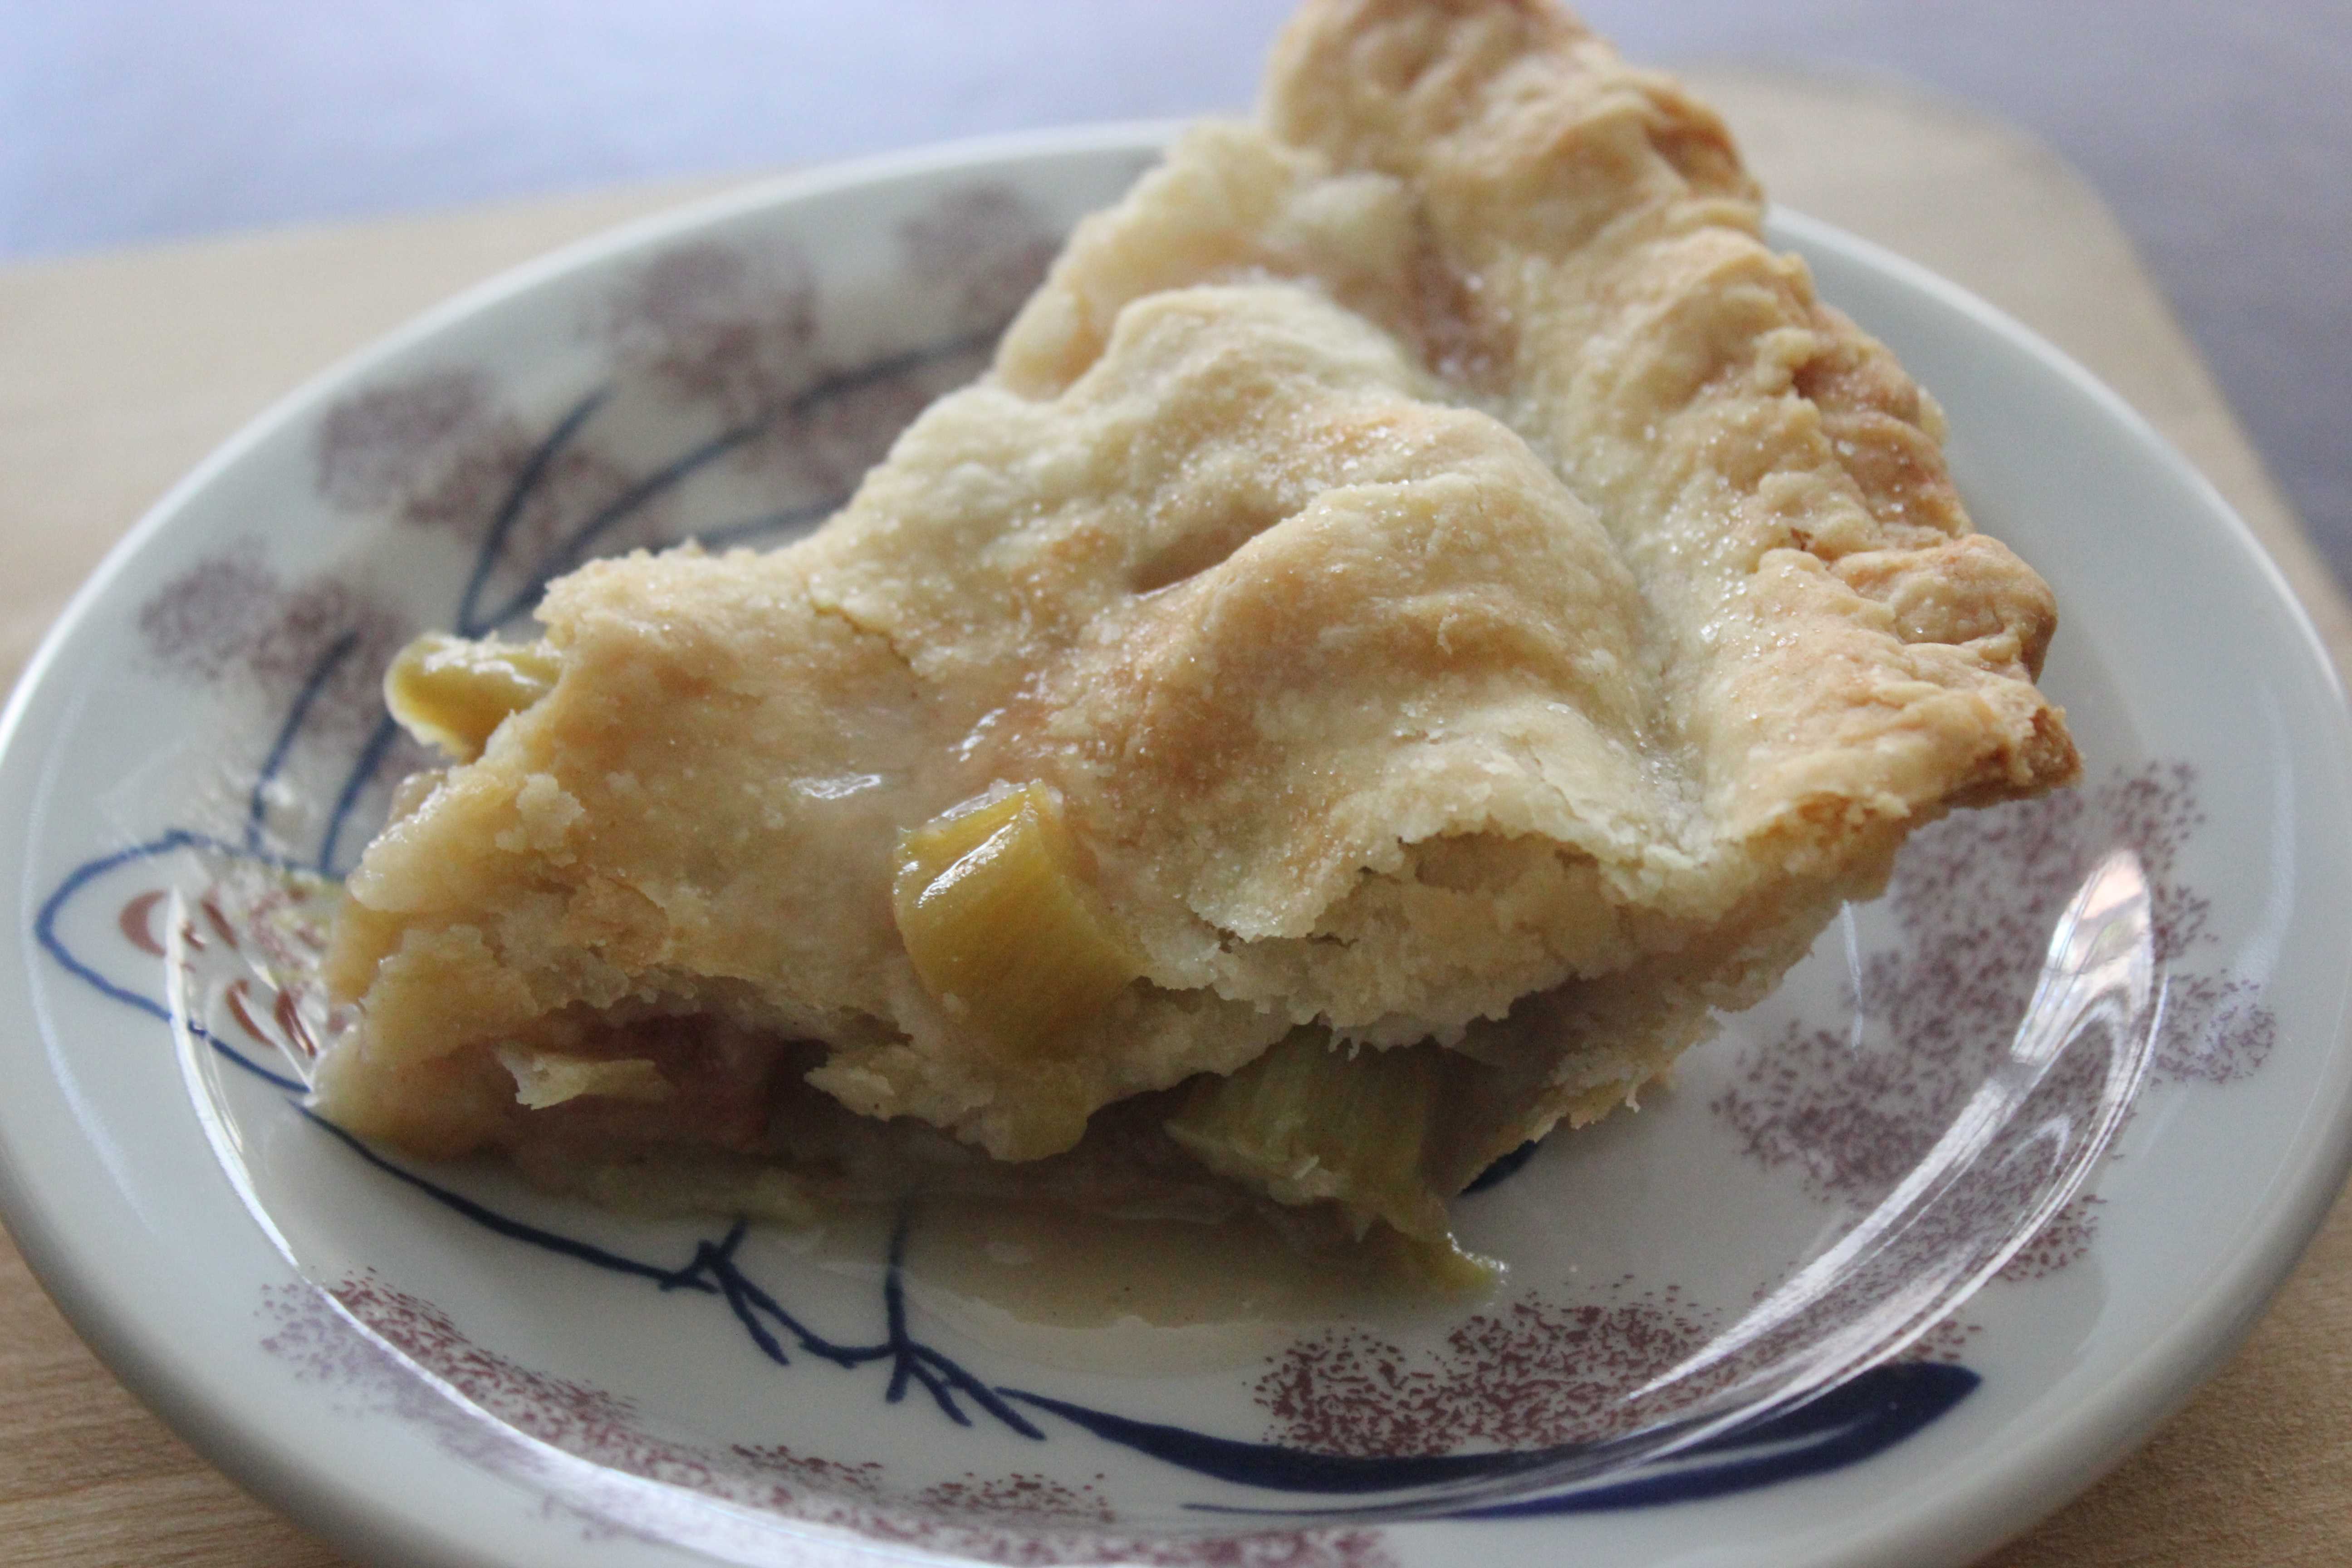 Rhubarb Pie | Revolutionary Pie